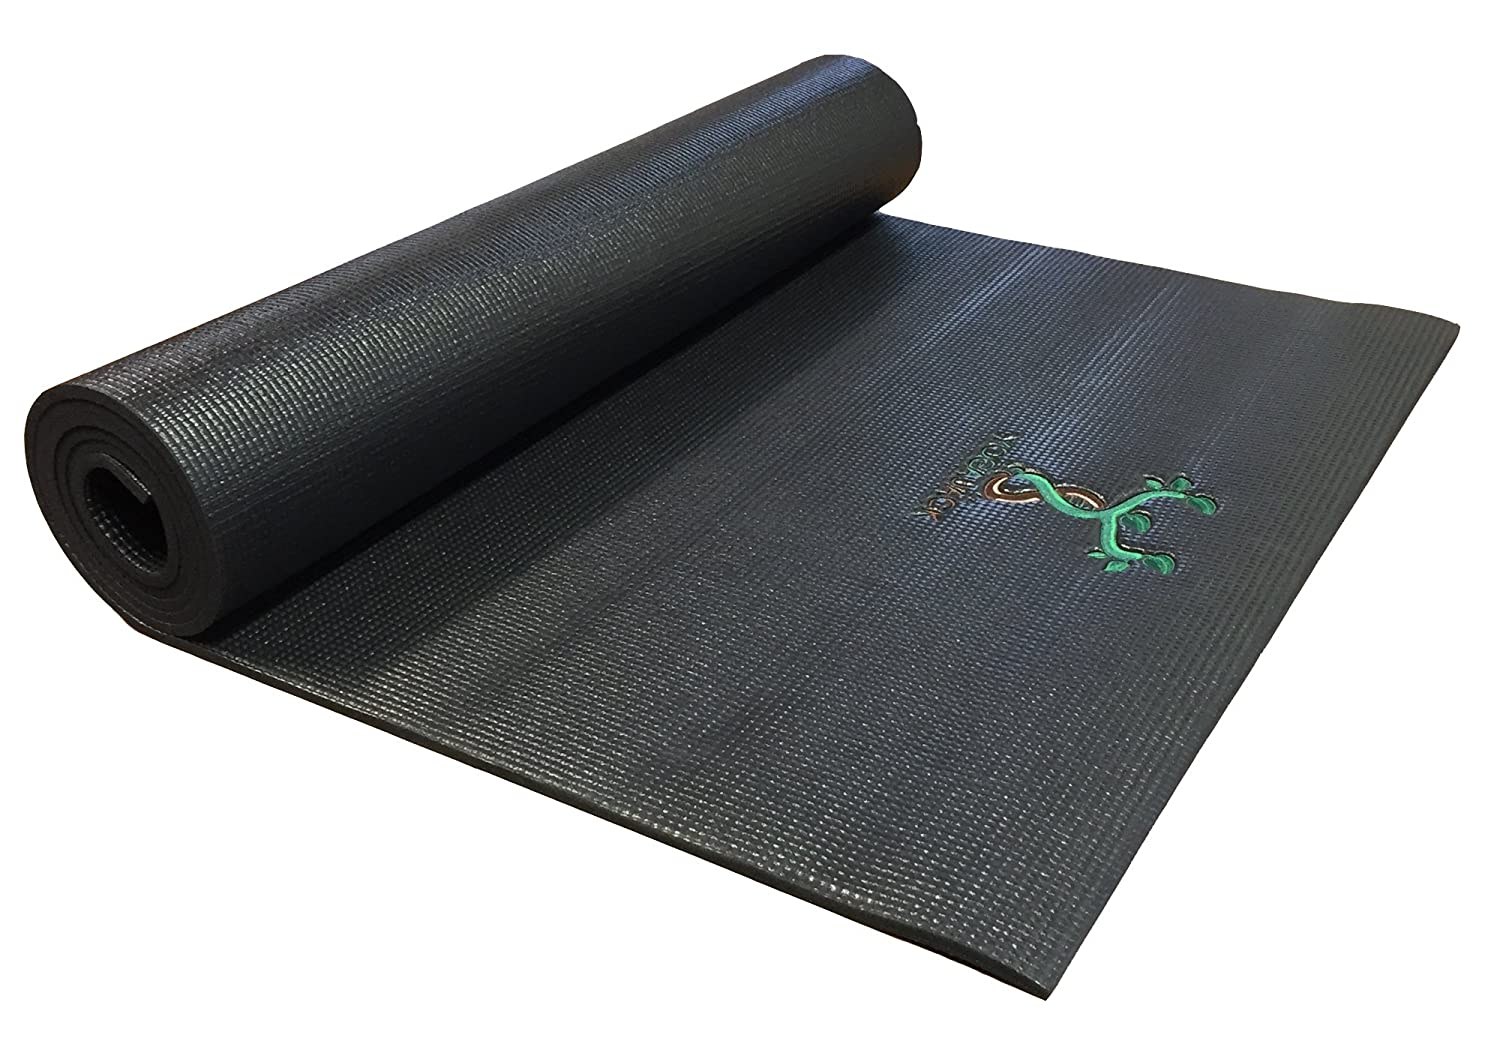 Amazon.com : YogaJack BlackJack 74in Yoga Mat : Sports ...